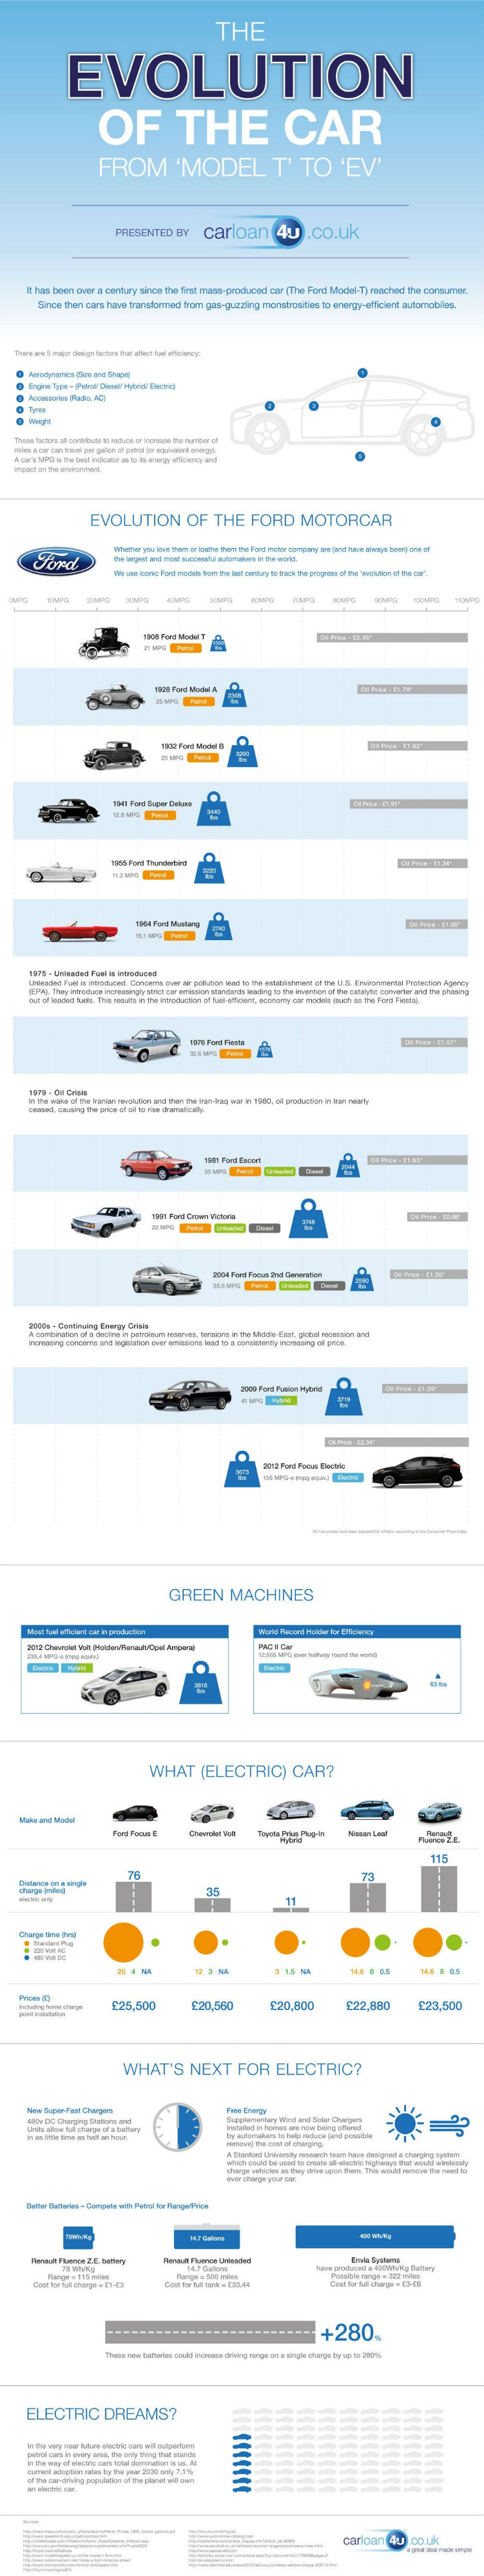 The Car Has Come A Long Way [INFOGRAPHIC]